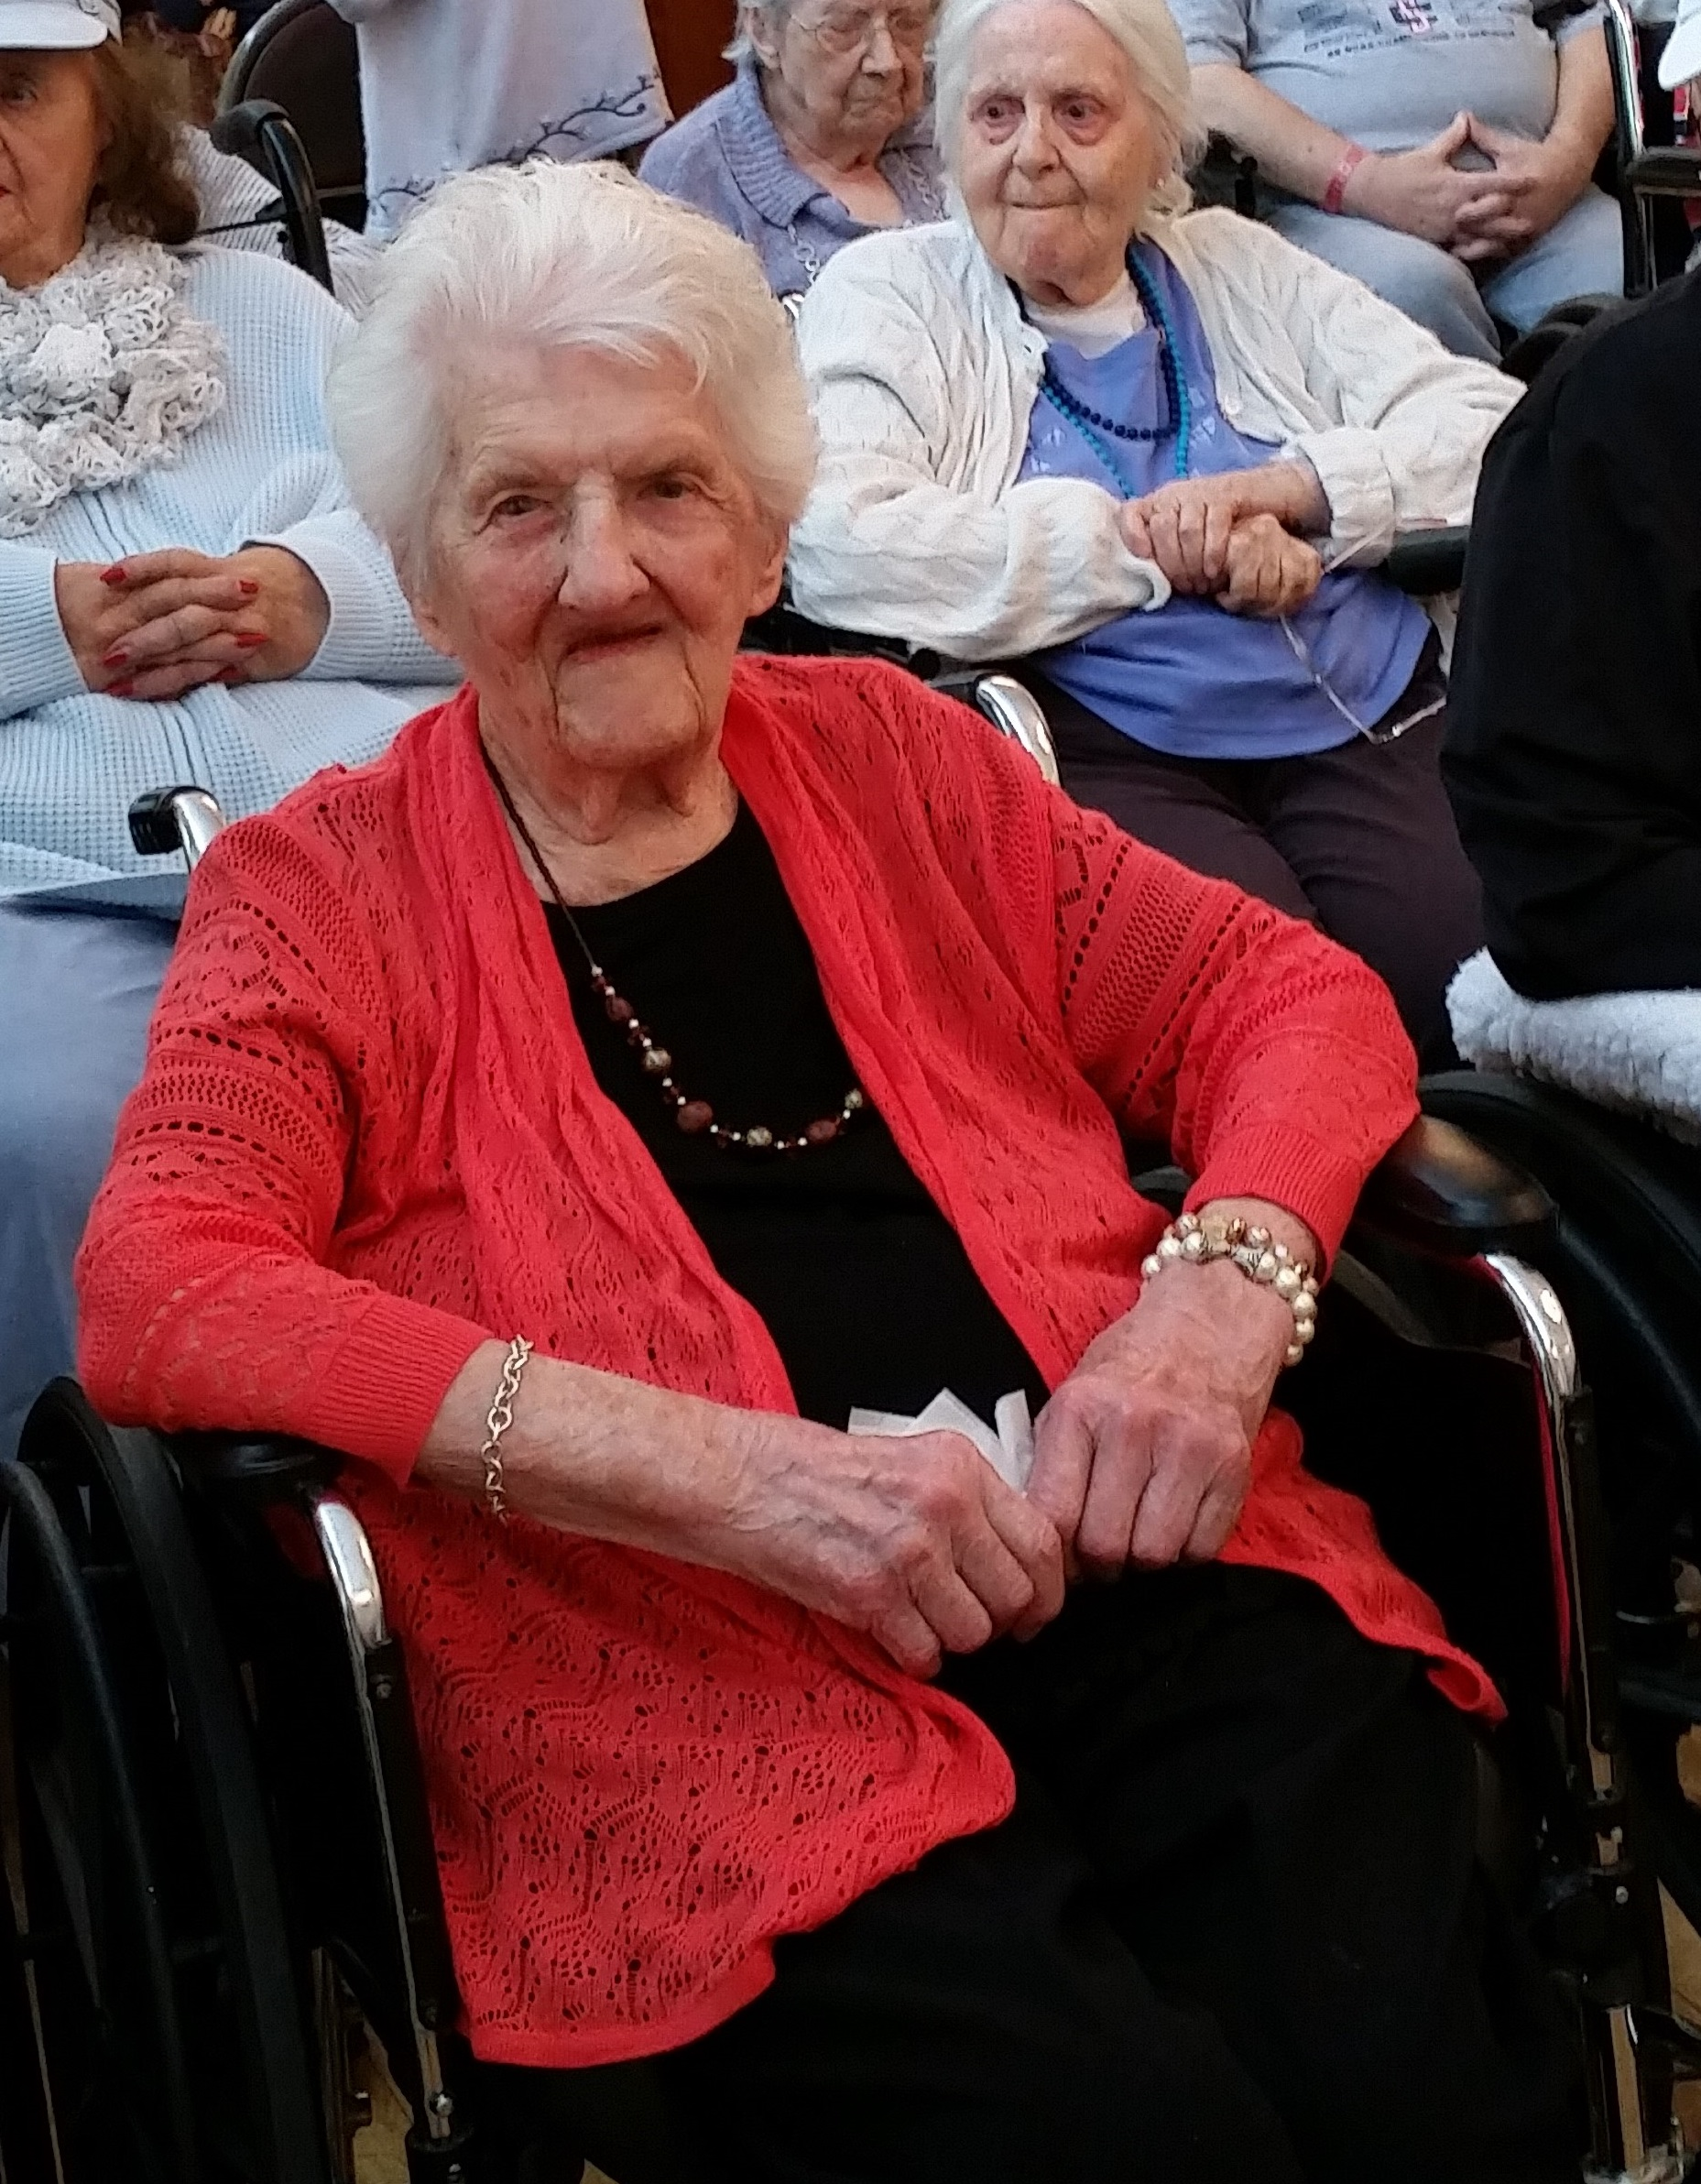 Minnie Sutton from Bishope Wicke Community to have dream come true at 106